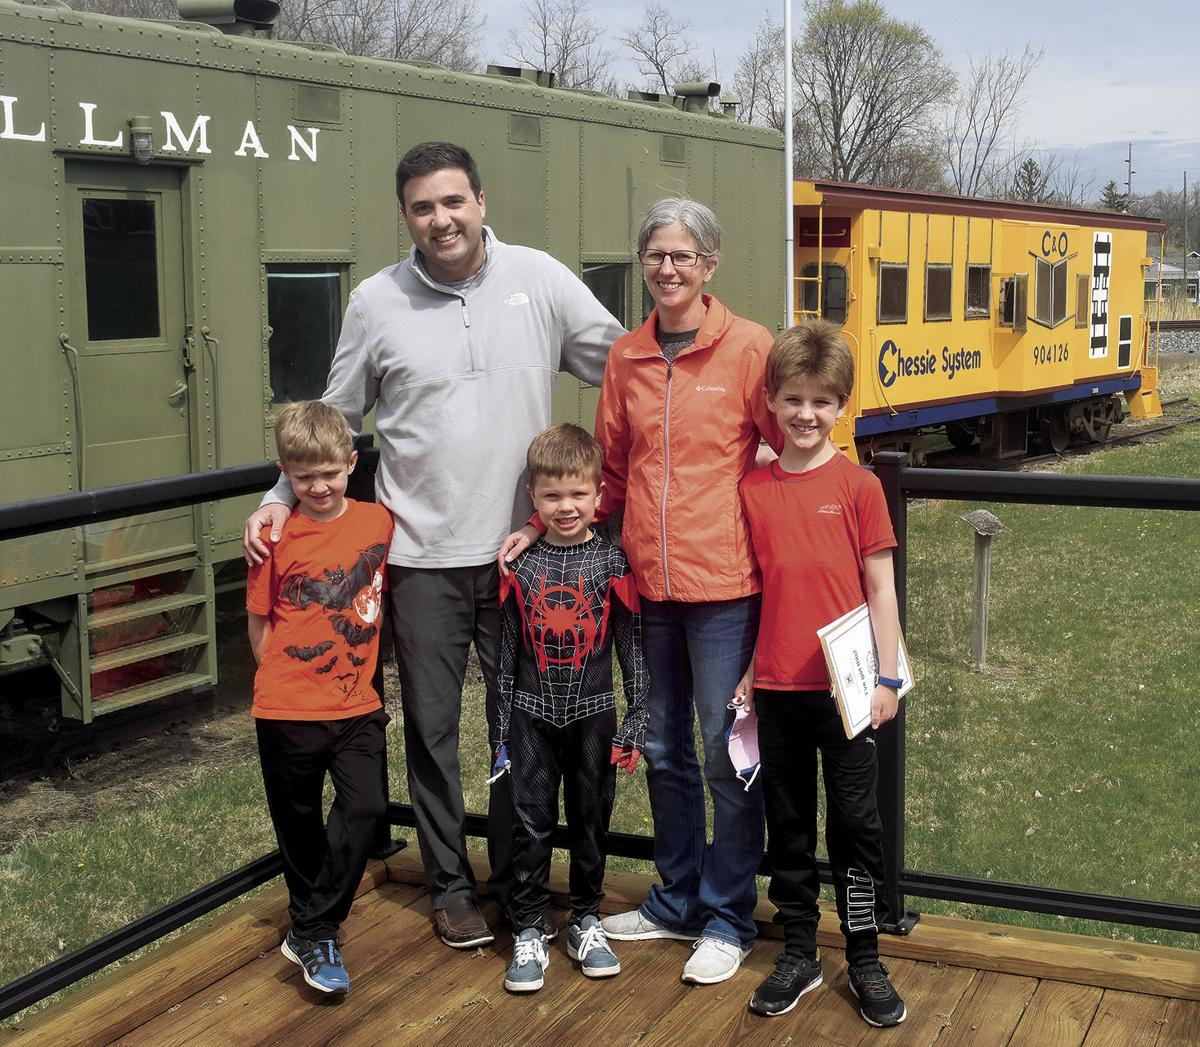 4 15 RR Museum 1 Family picture.jpg